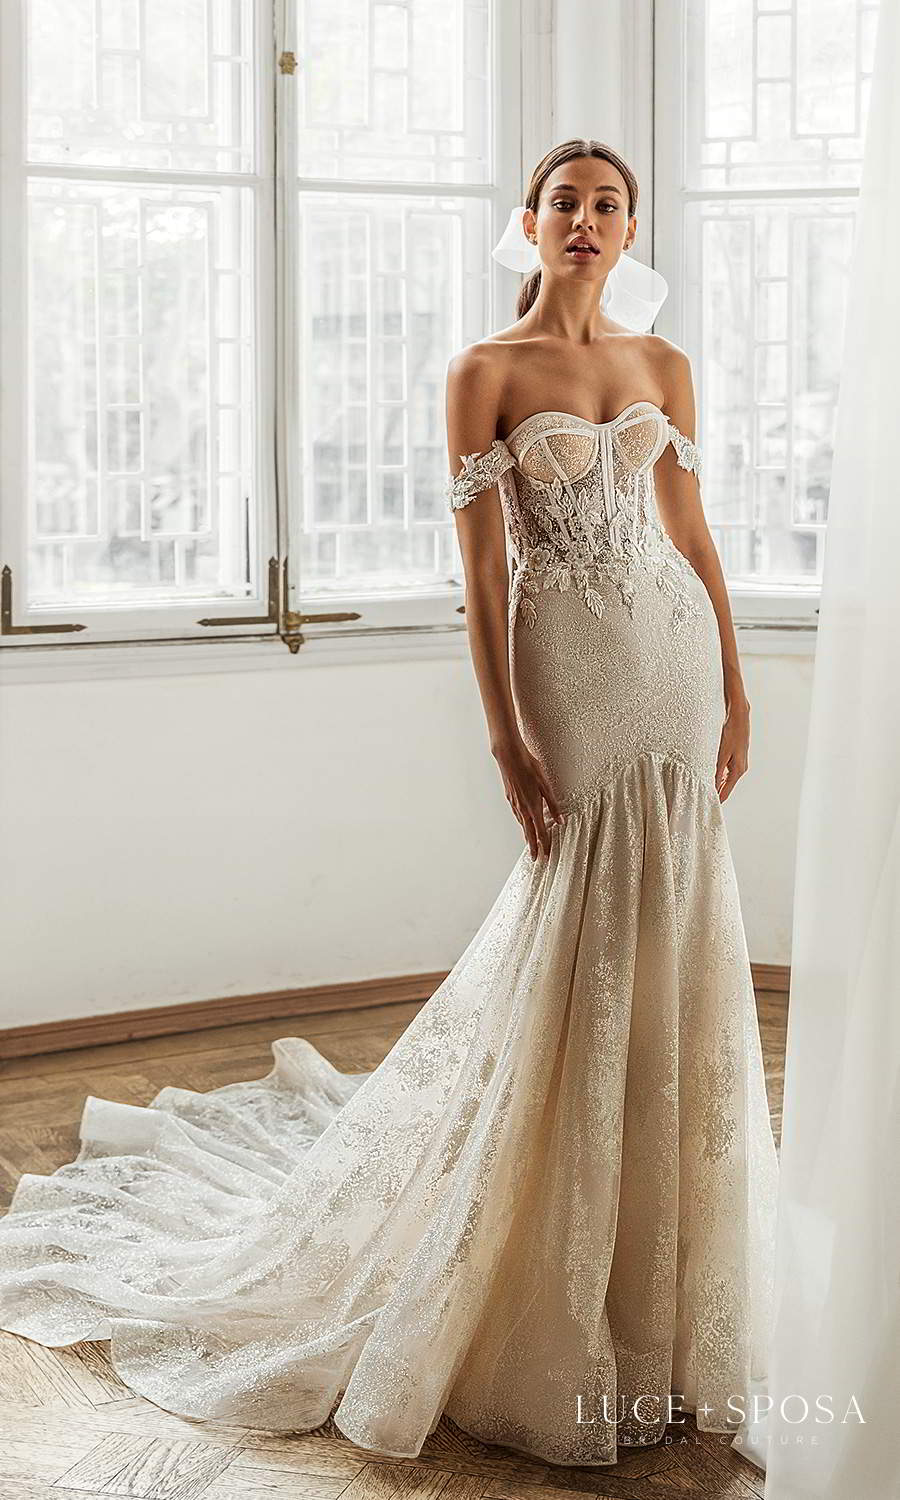 luce sposa 2021 shades of couture bridal off shoulder straps sweetheart neckline embellished fit flare mermaid wedding dress chapel train (crystal) mv